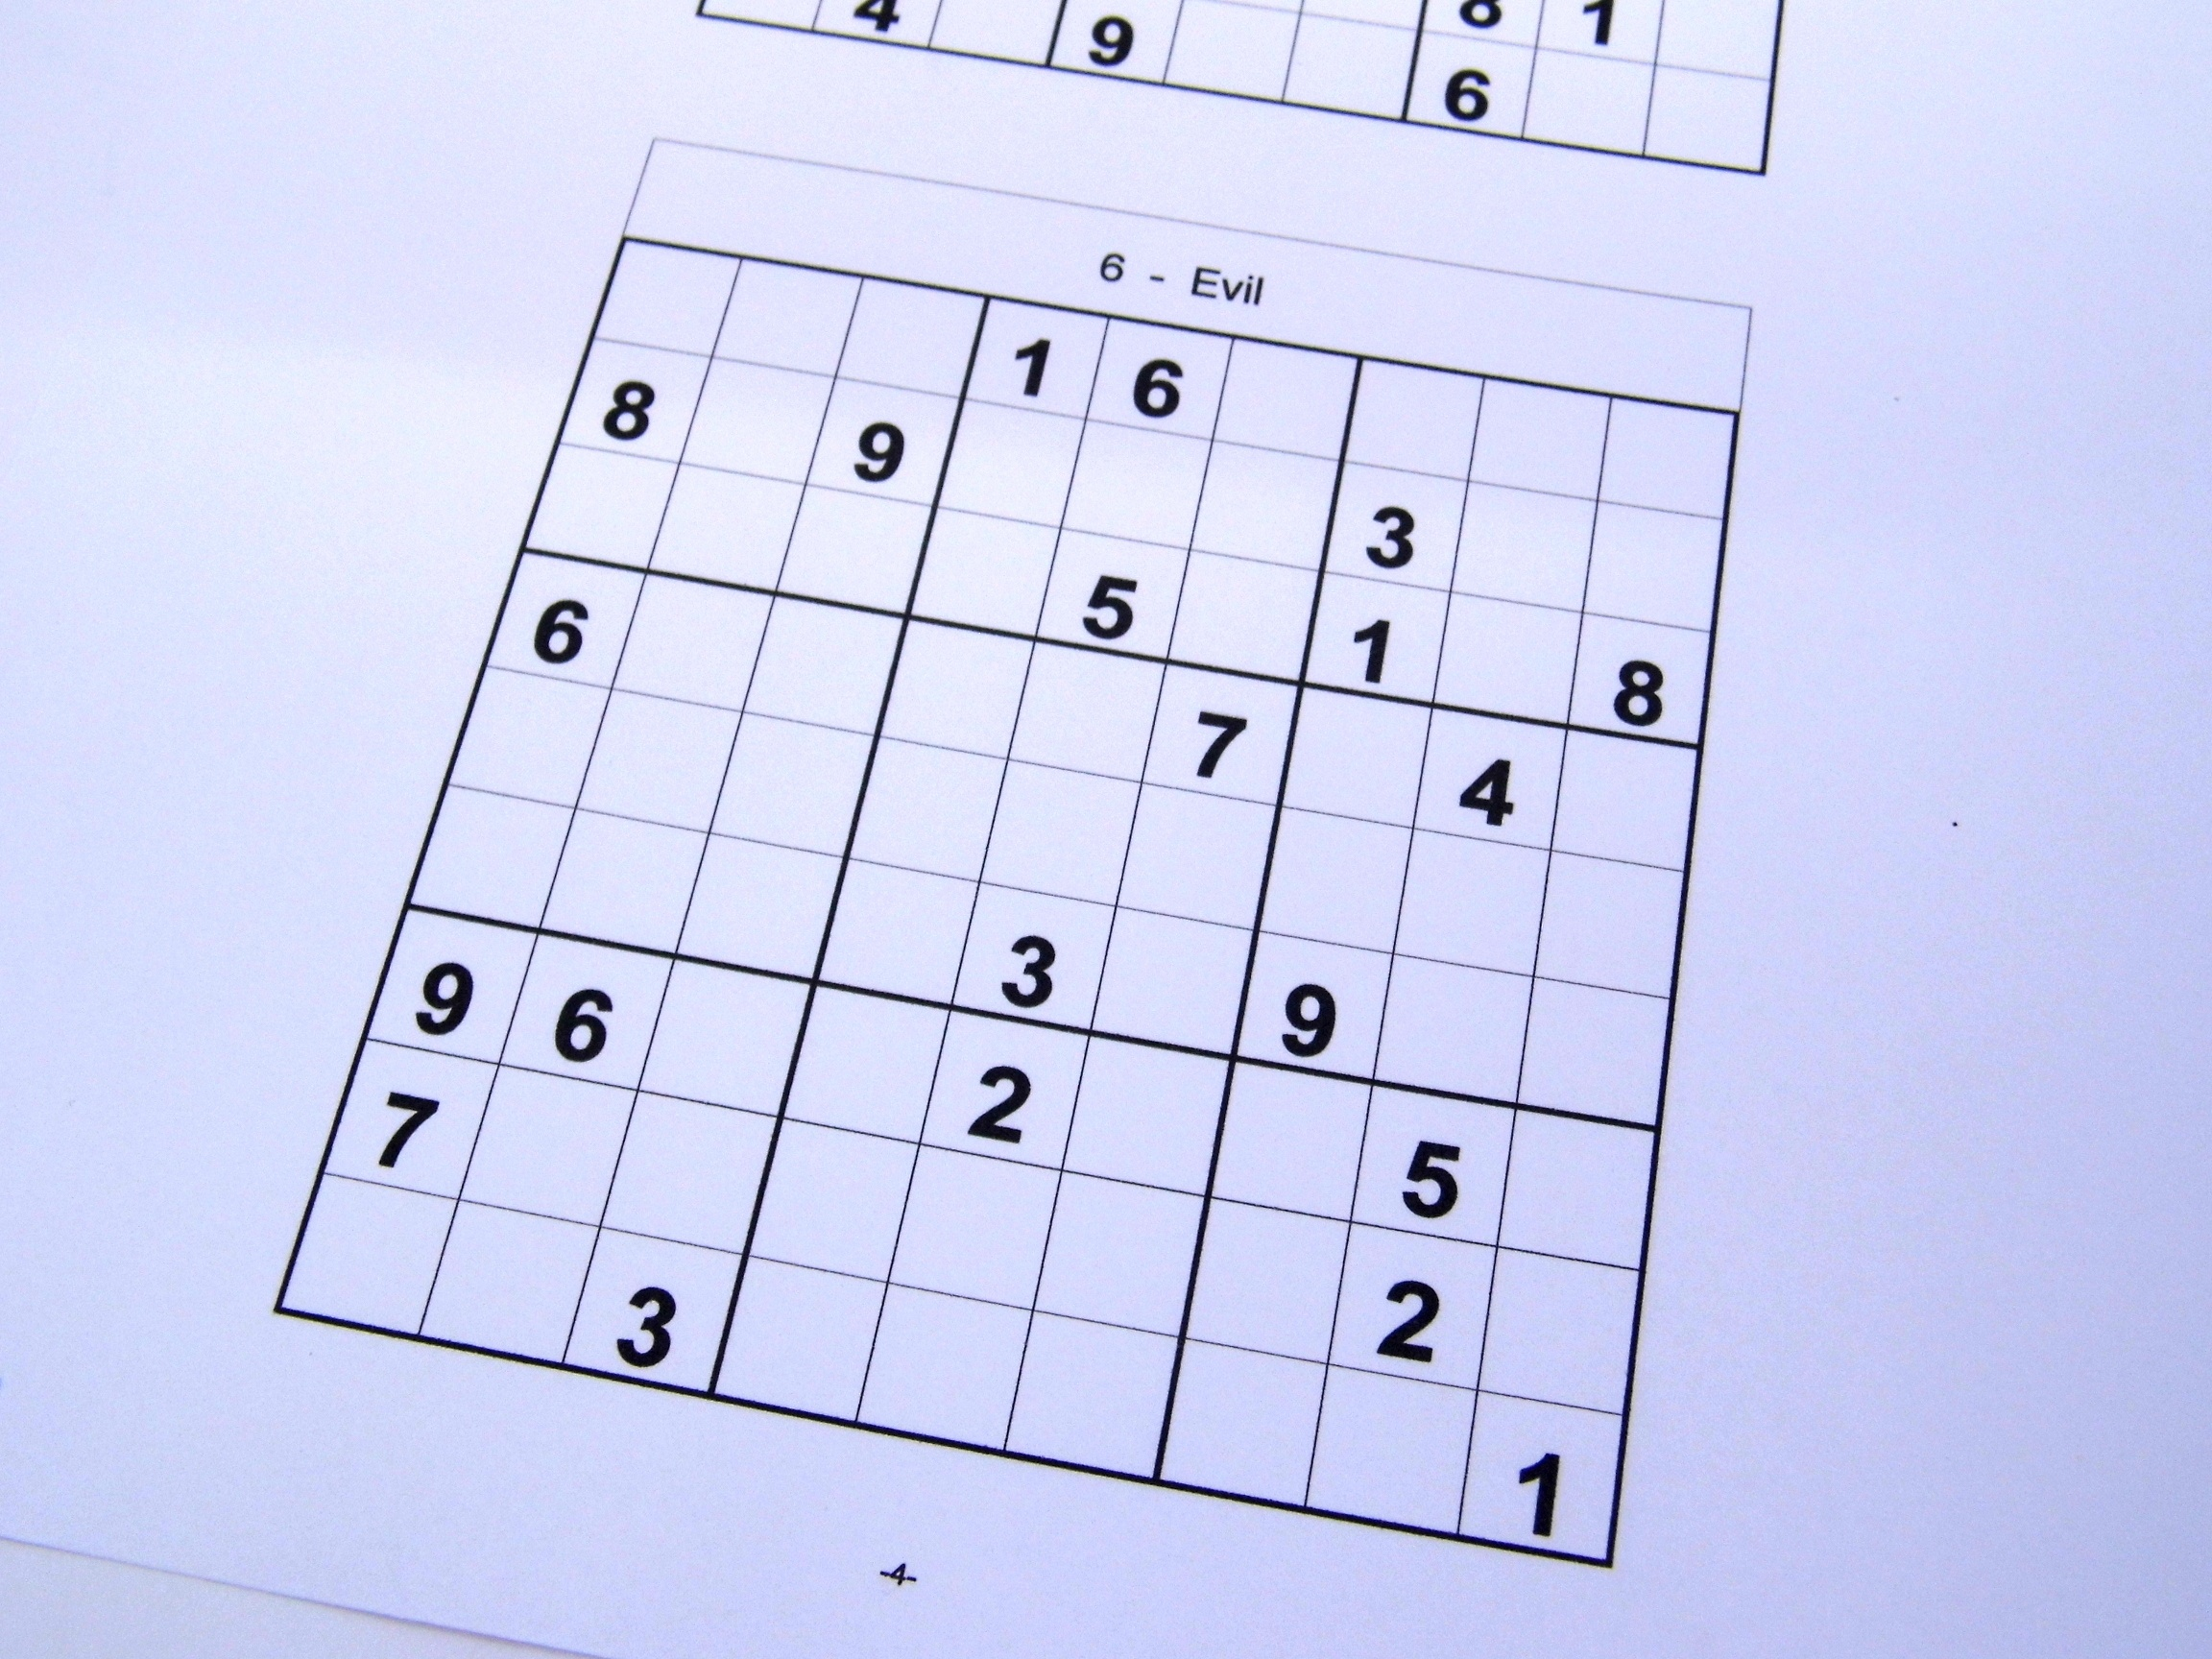 Free Sudoku Puzzles – Free Sudoku Puzzles From Easy To Evil Level - Free Printable Sudoku Books